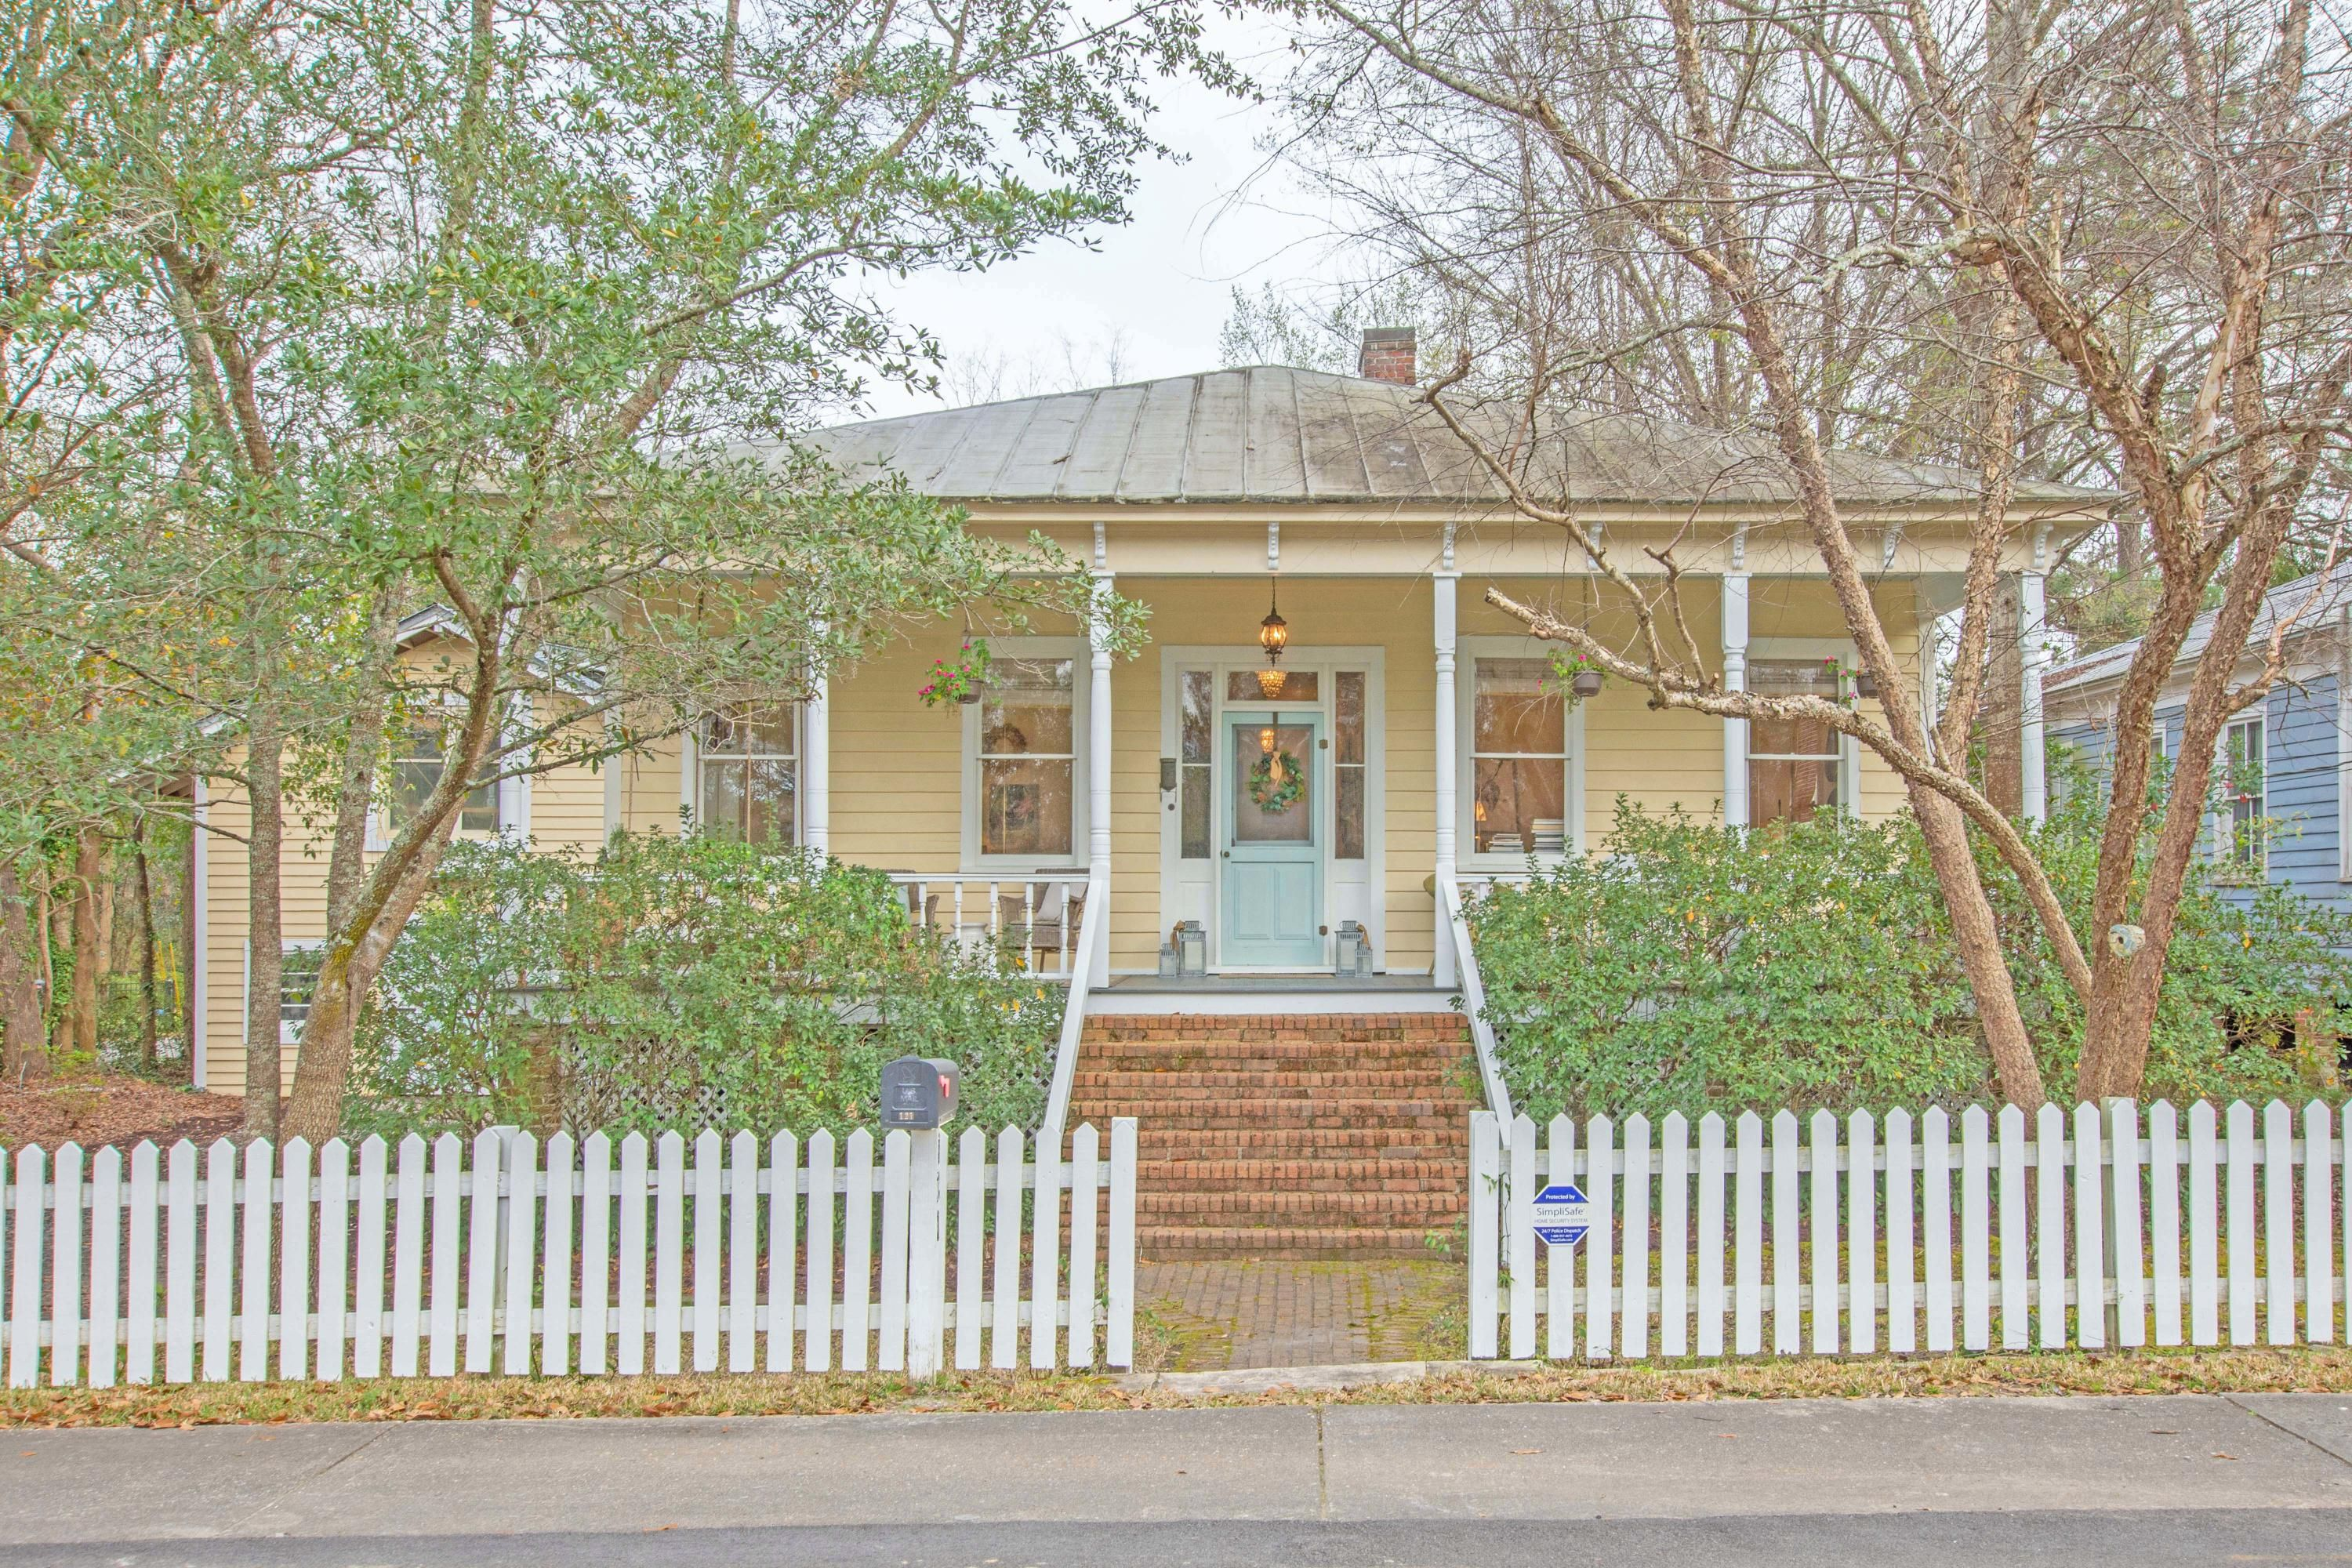 This ABSOLUTELY historic home has been lovingly